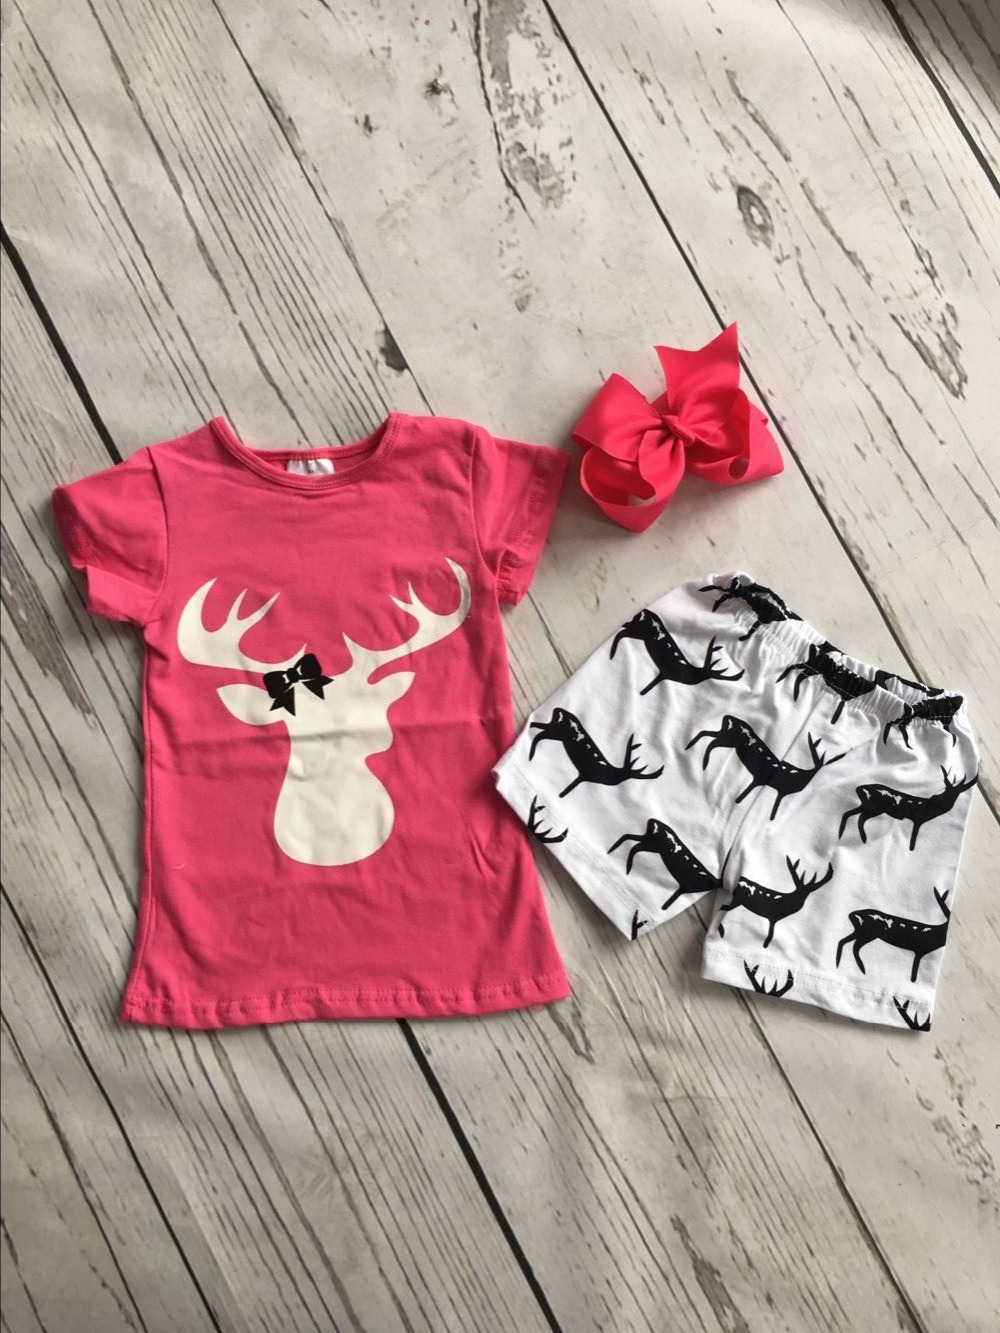 Baby girls casual summer boutique outfits girls reindeer clothing baby girls hot pink top with reindeer shorts outfits with bows hot sale baby outfits coverall casual